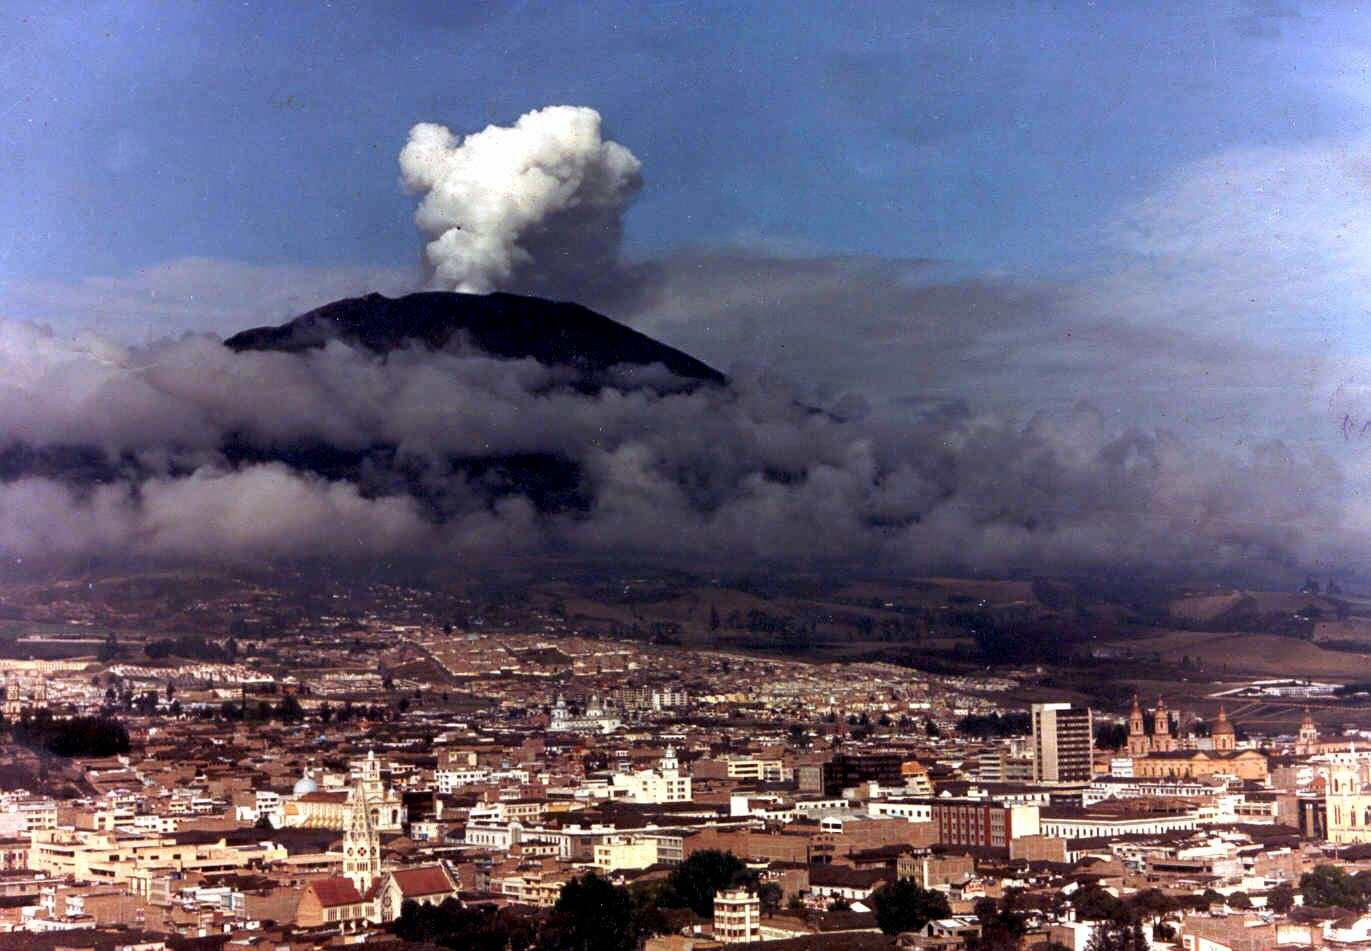 25,000 people died in November 1985 when the Nevado del Ruiz erupted in Colombia